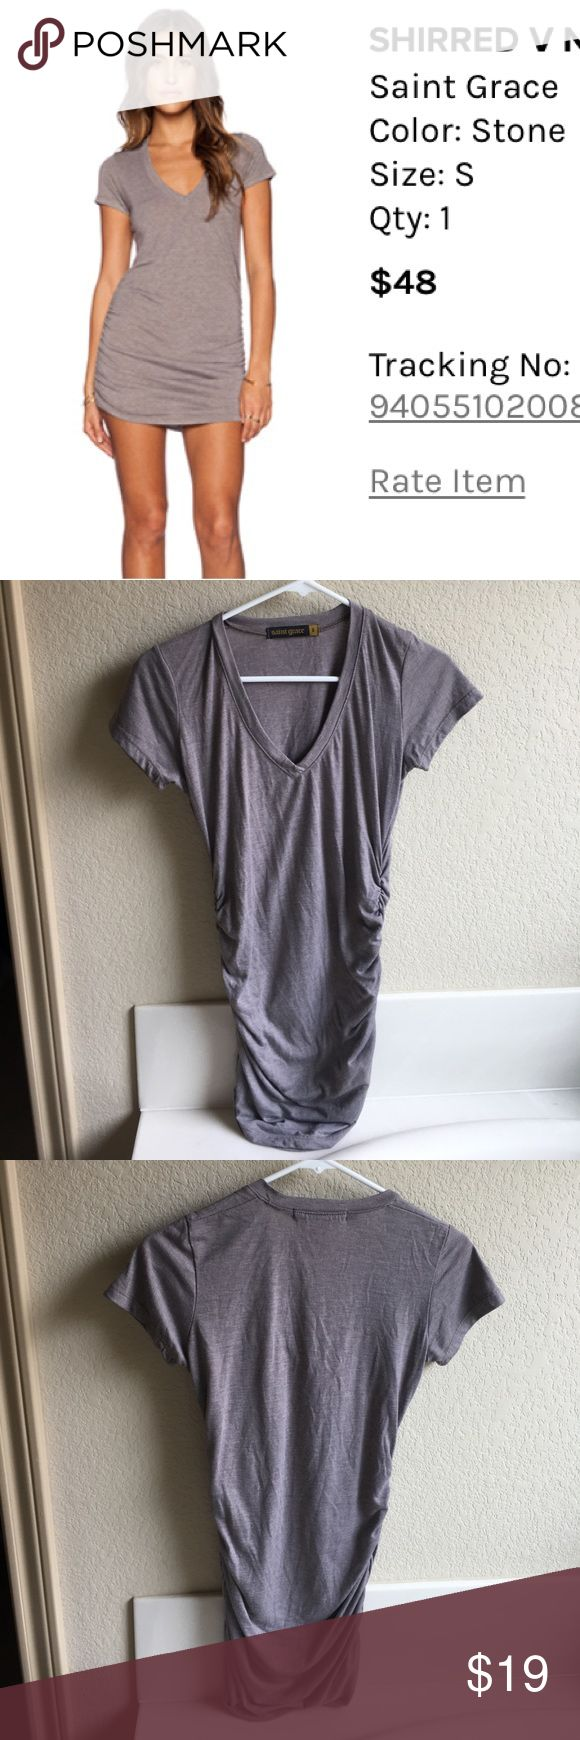 Saint Grace fitted v neck tshirt dress Color is a kind of grey, flattering dress looks great with some over the knee boots! Saint Grace Dresses Mini